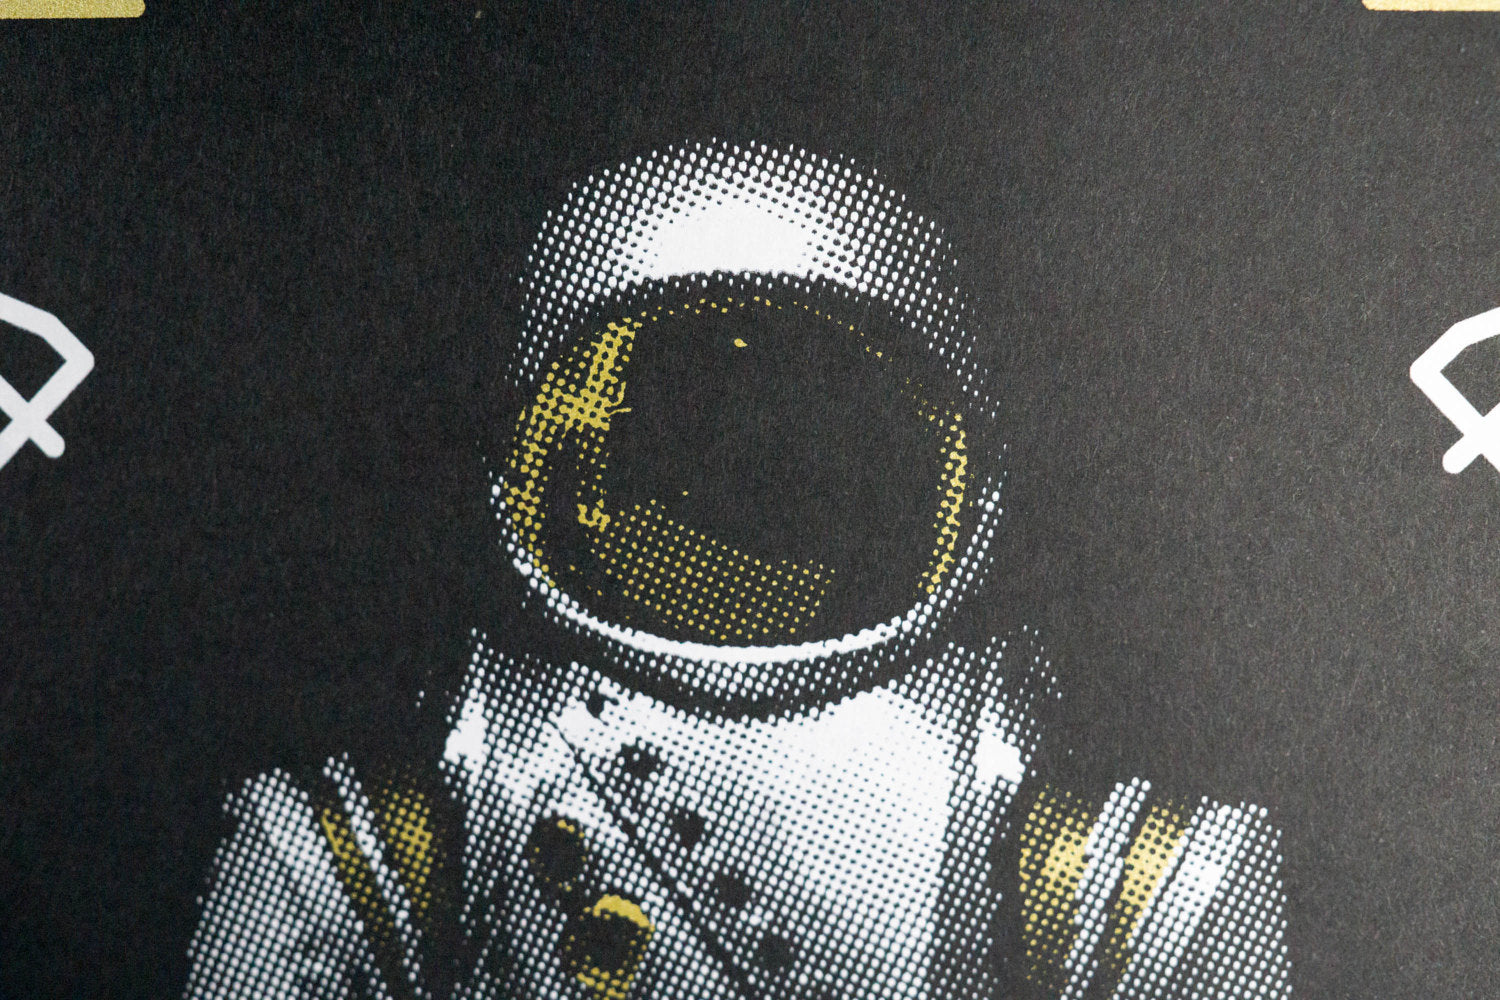 Spacesuit, Litton RX-2 Hardsuit - Space Exploration Poster